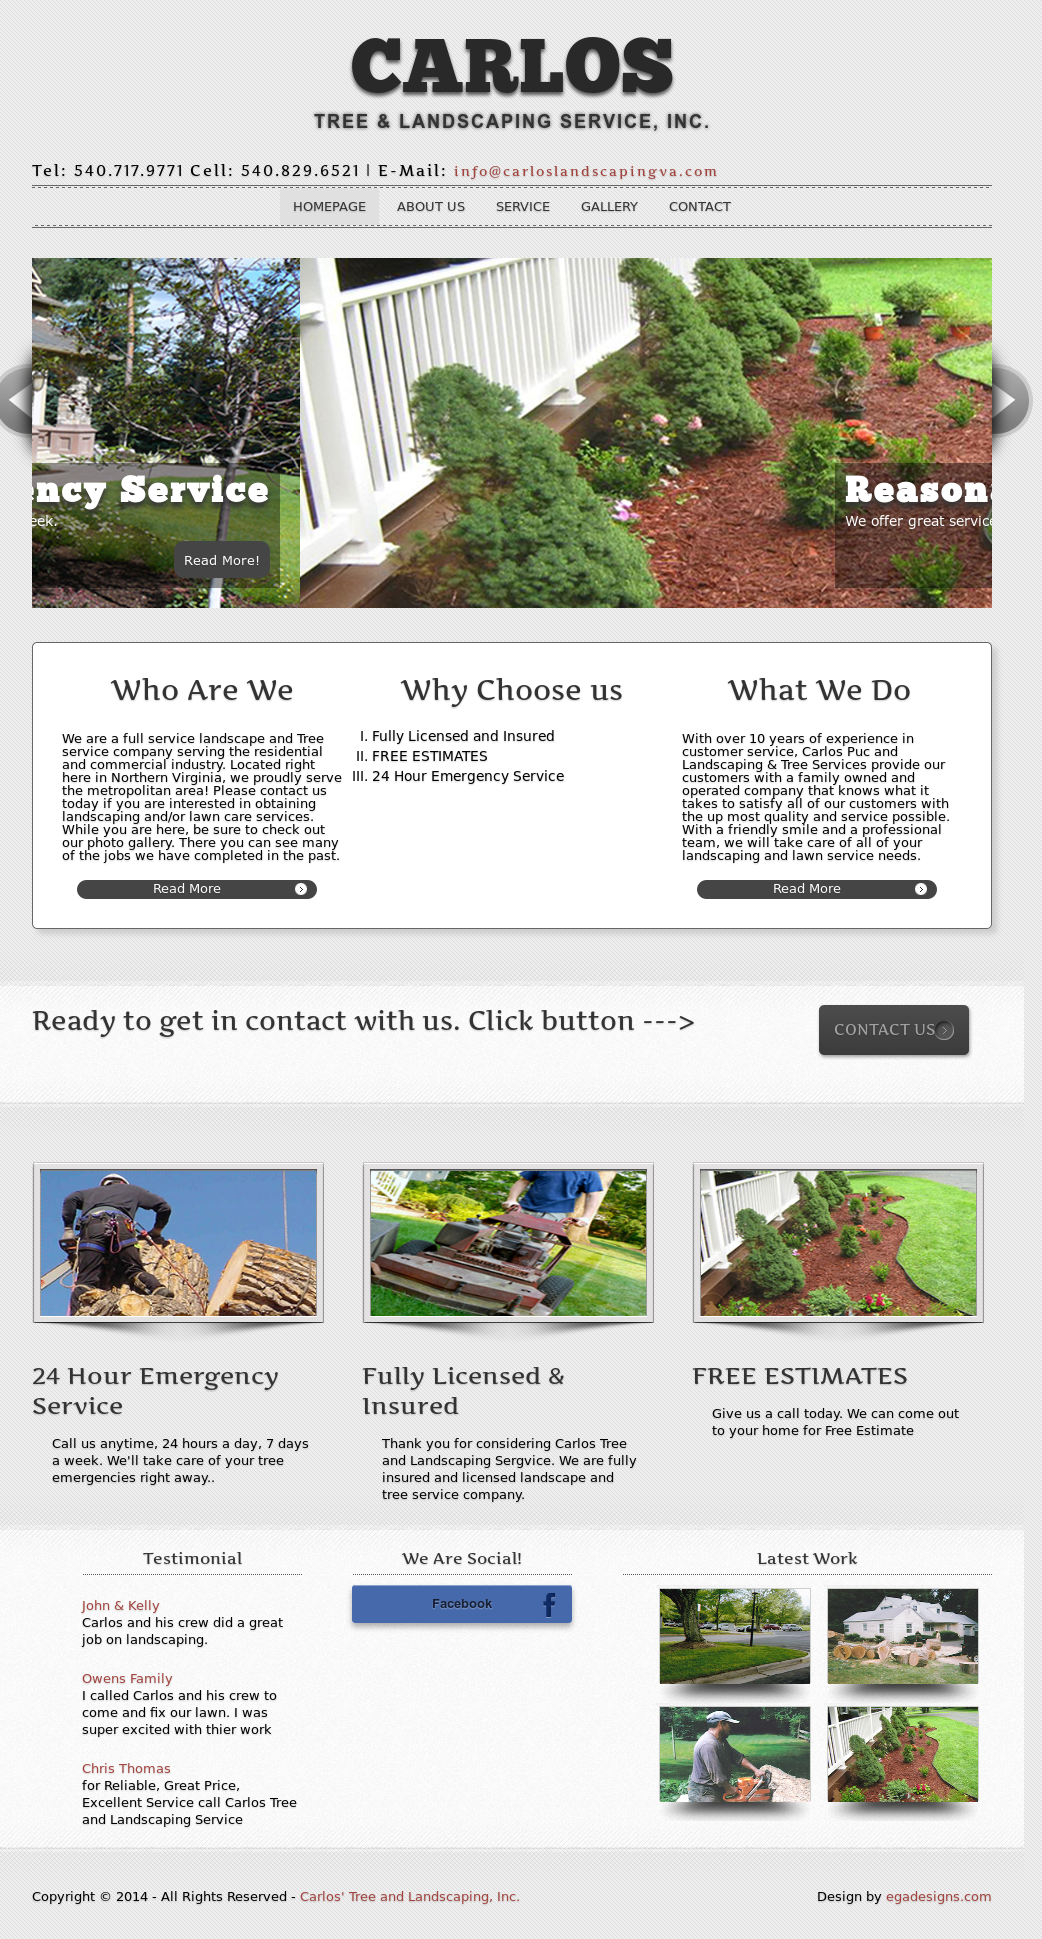 Carlosu0027 Tree And Landscaping Competitors, Revenue And Employees   Owler  Company Profile